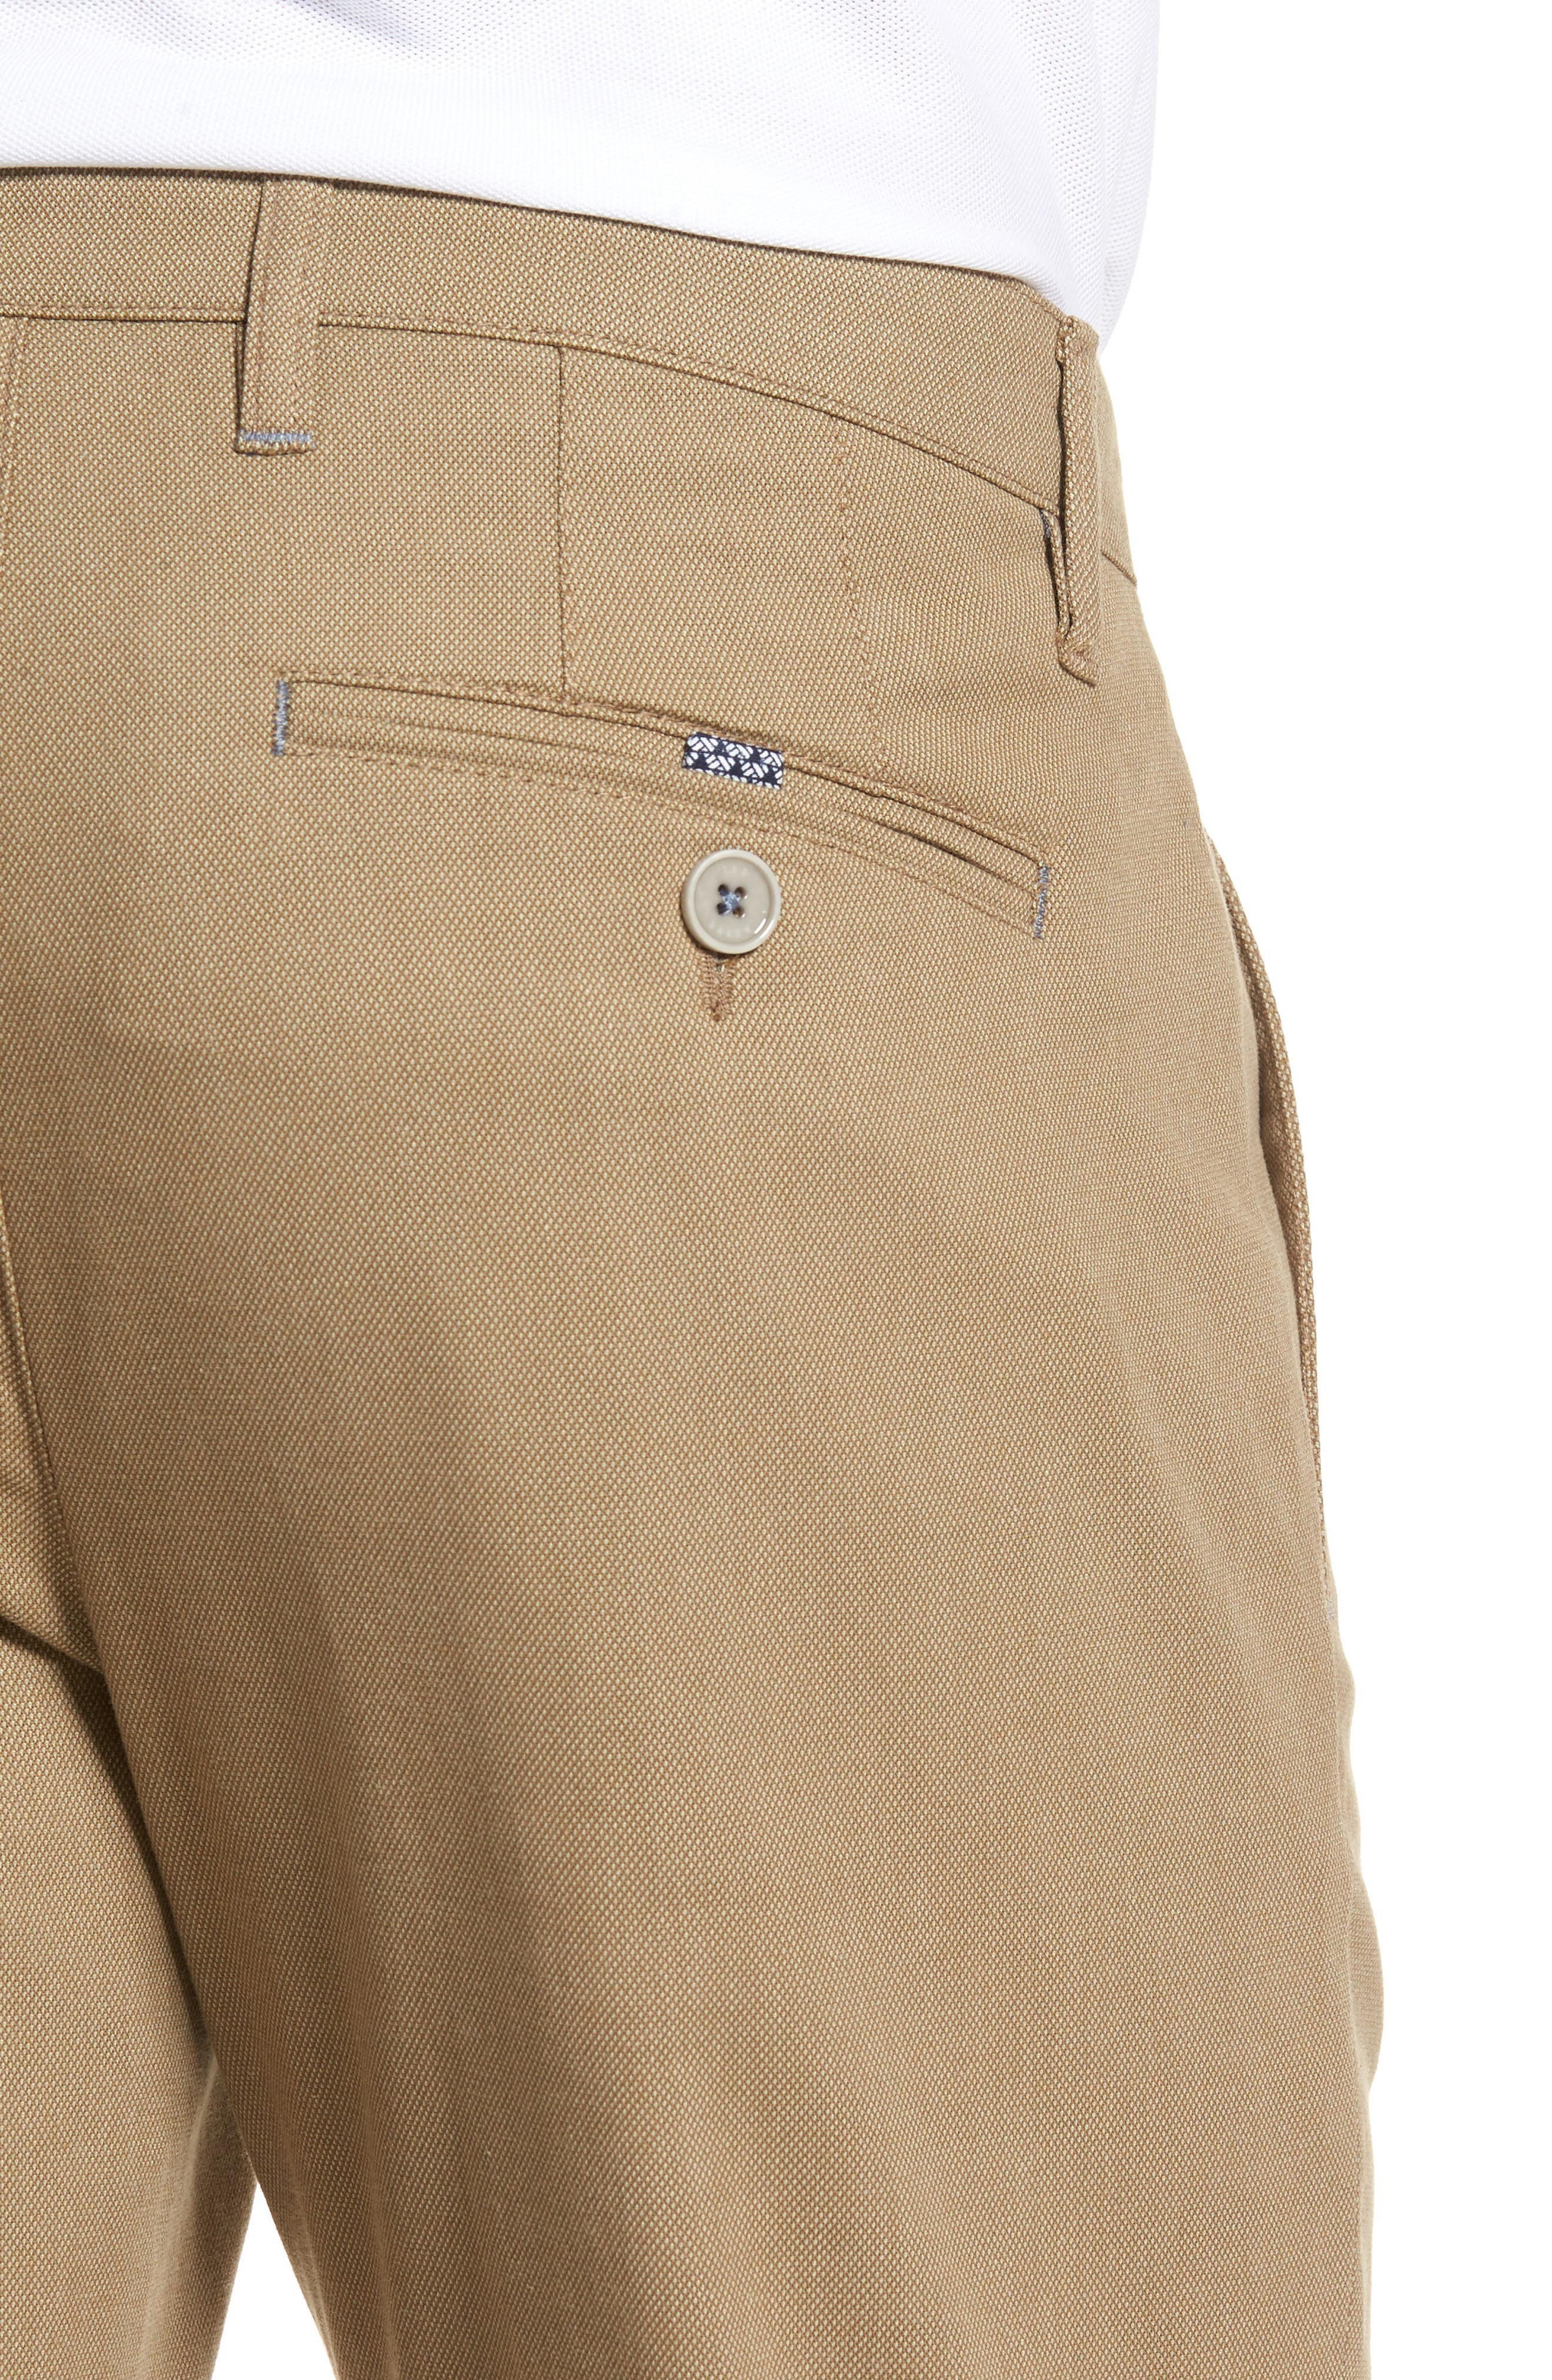 Alternate Image 4  - Ted Baker London Holclas Classic Fit Chino Pants